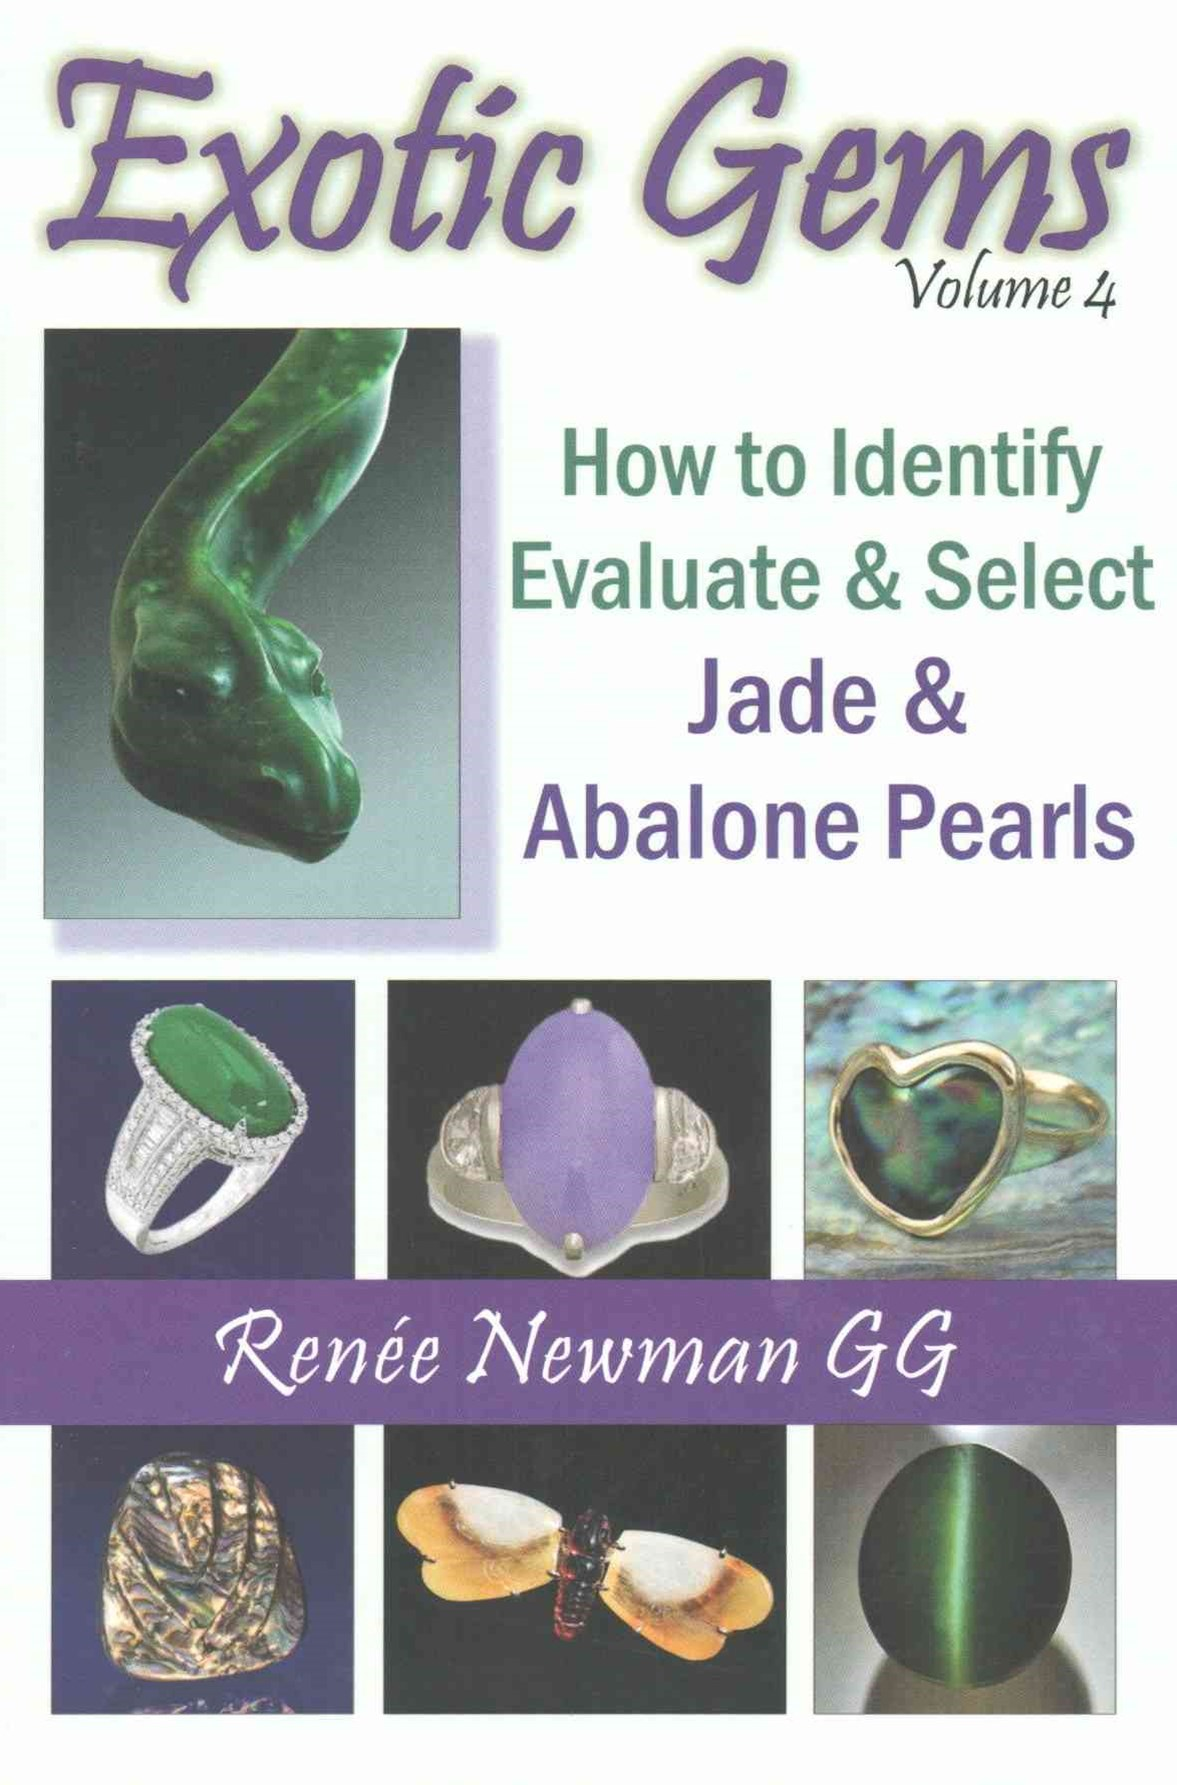 Exotic Gems: How to Identify, Evaluate & Select Jade & Abalone Pearls